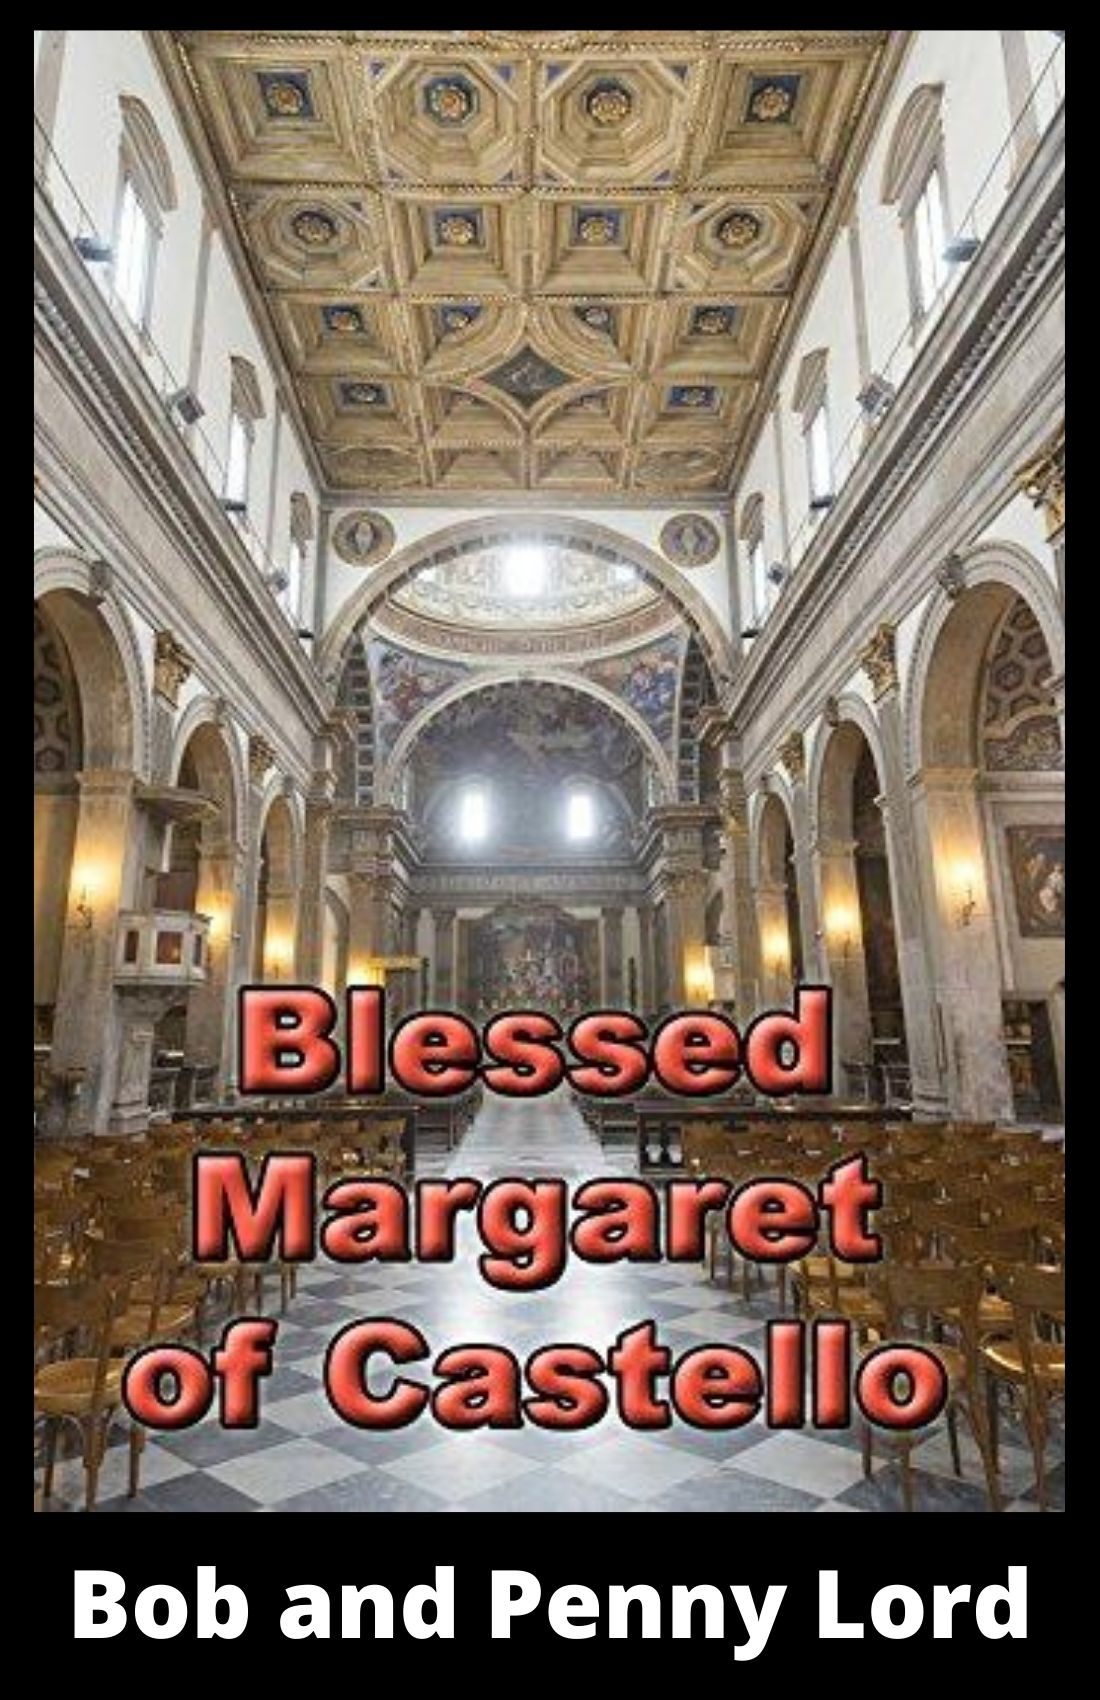 Blessed Margaret of Castello  Minibook - Bob and Penny Lord